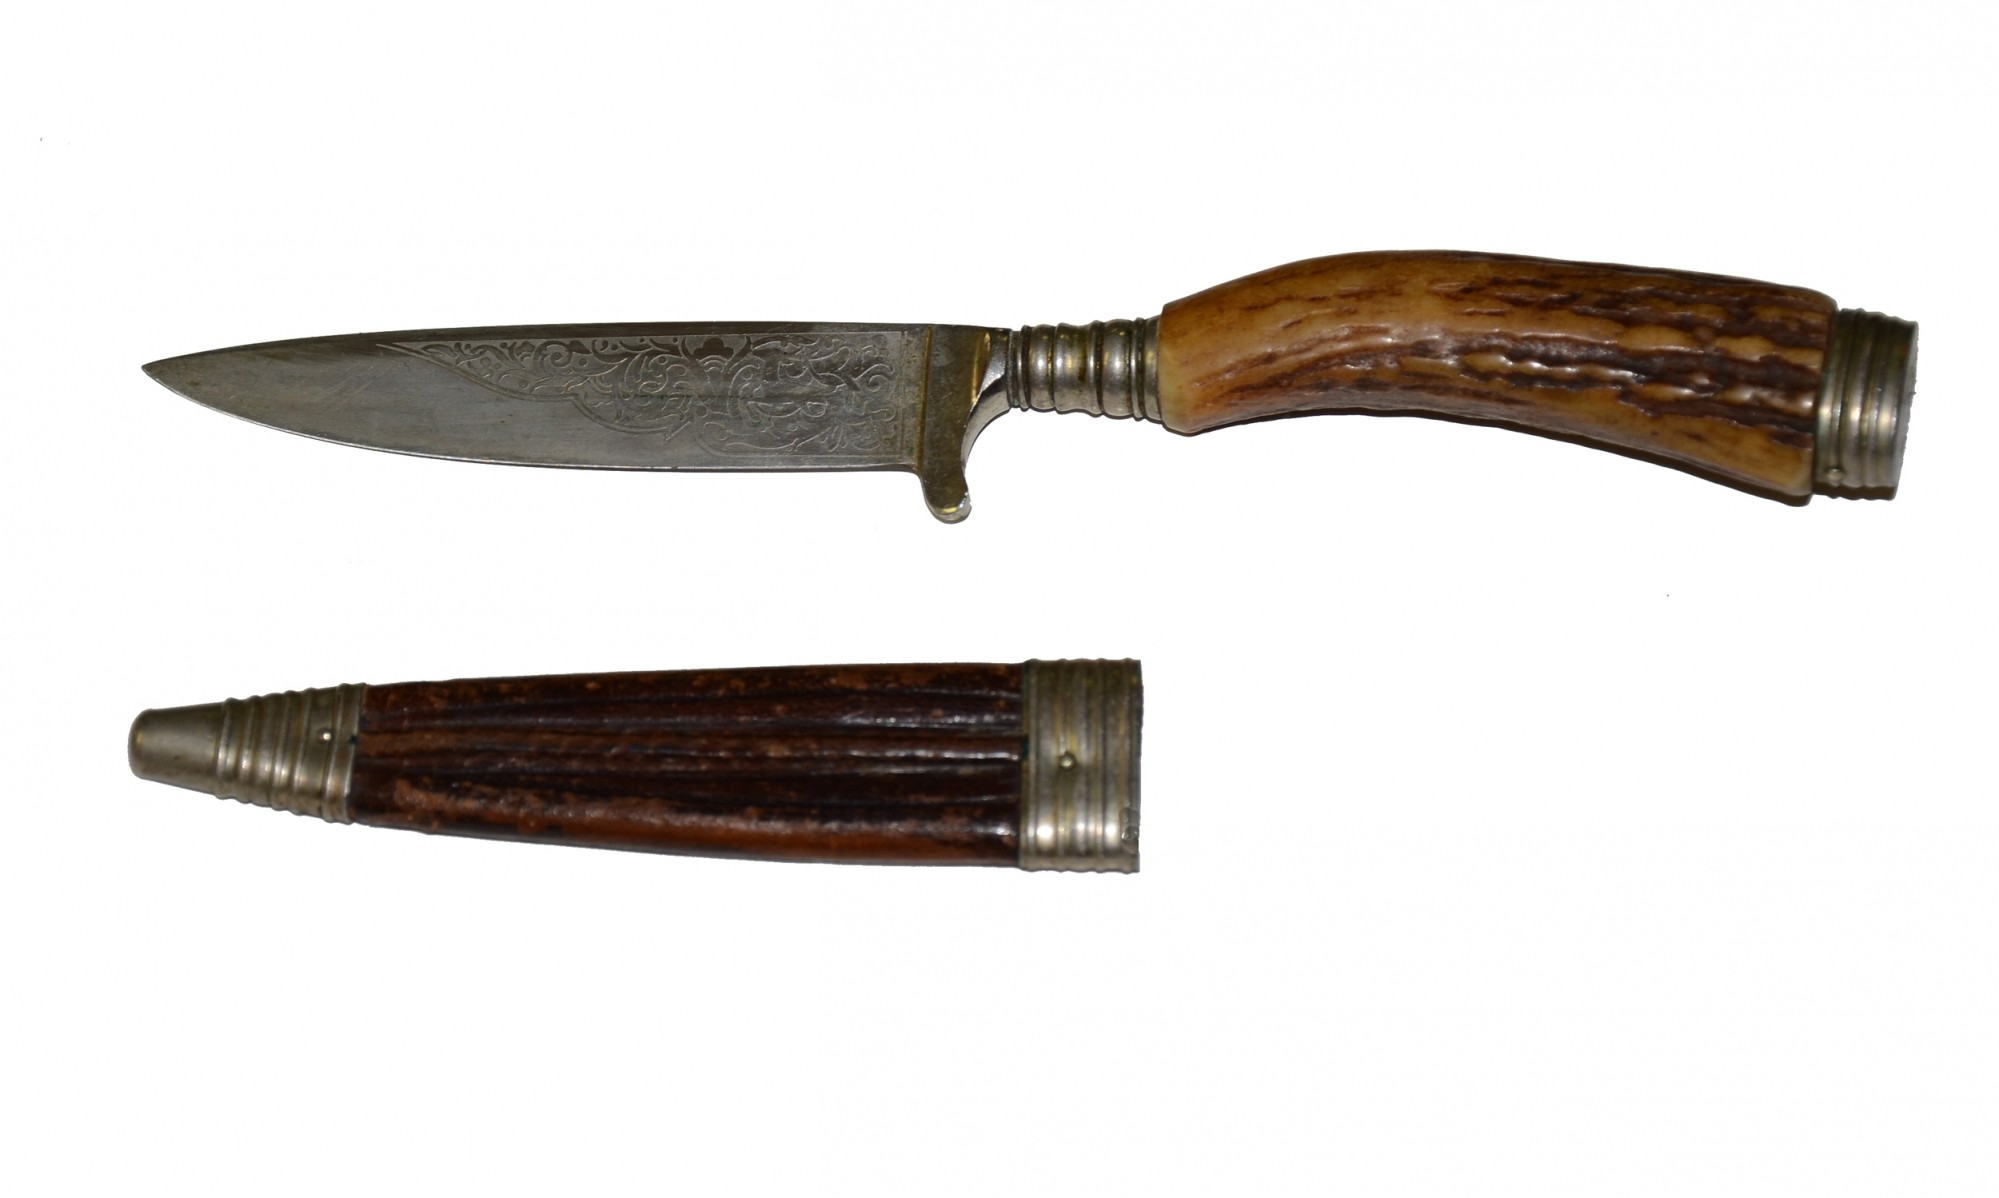 19th CENTURY GERMAN SIDE-KNIFE WITH SHEATH